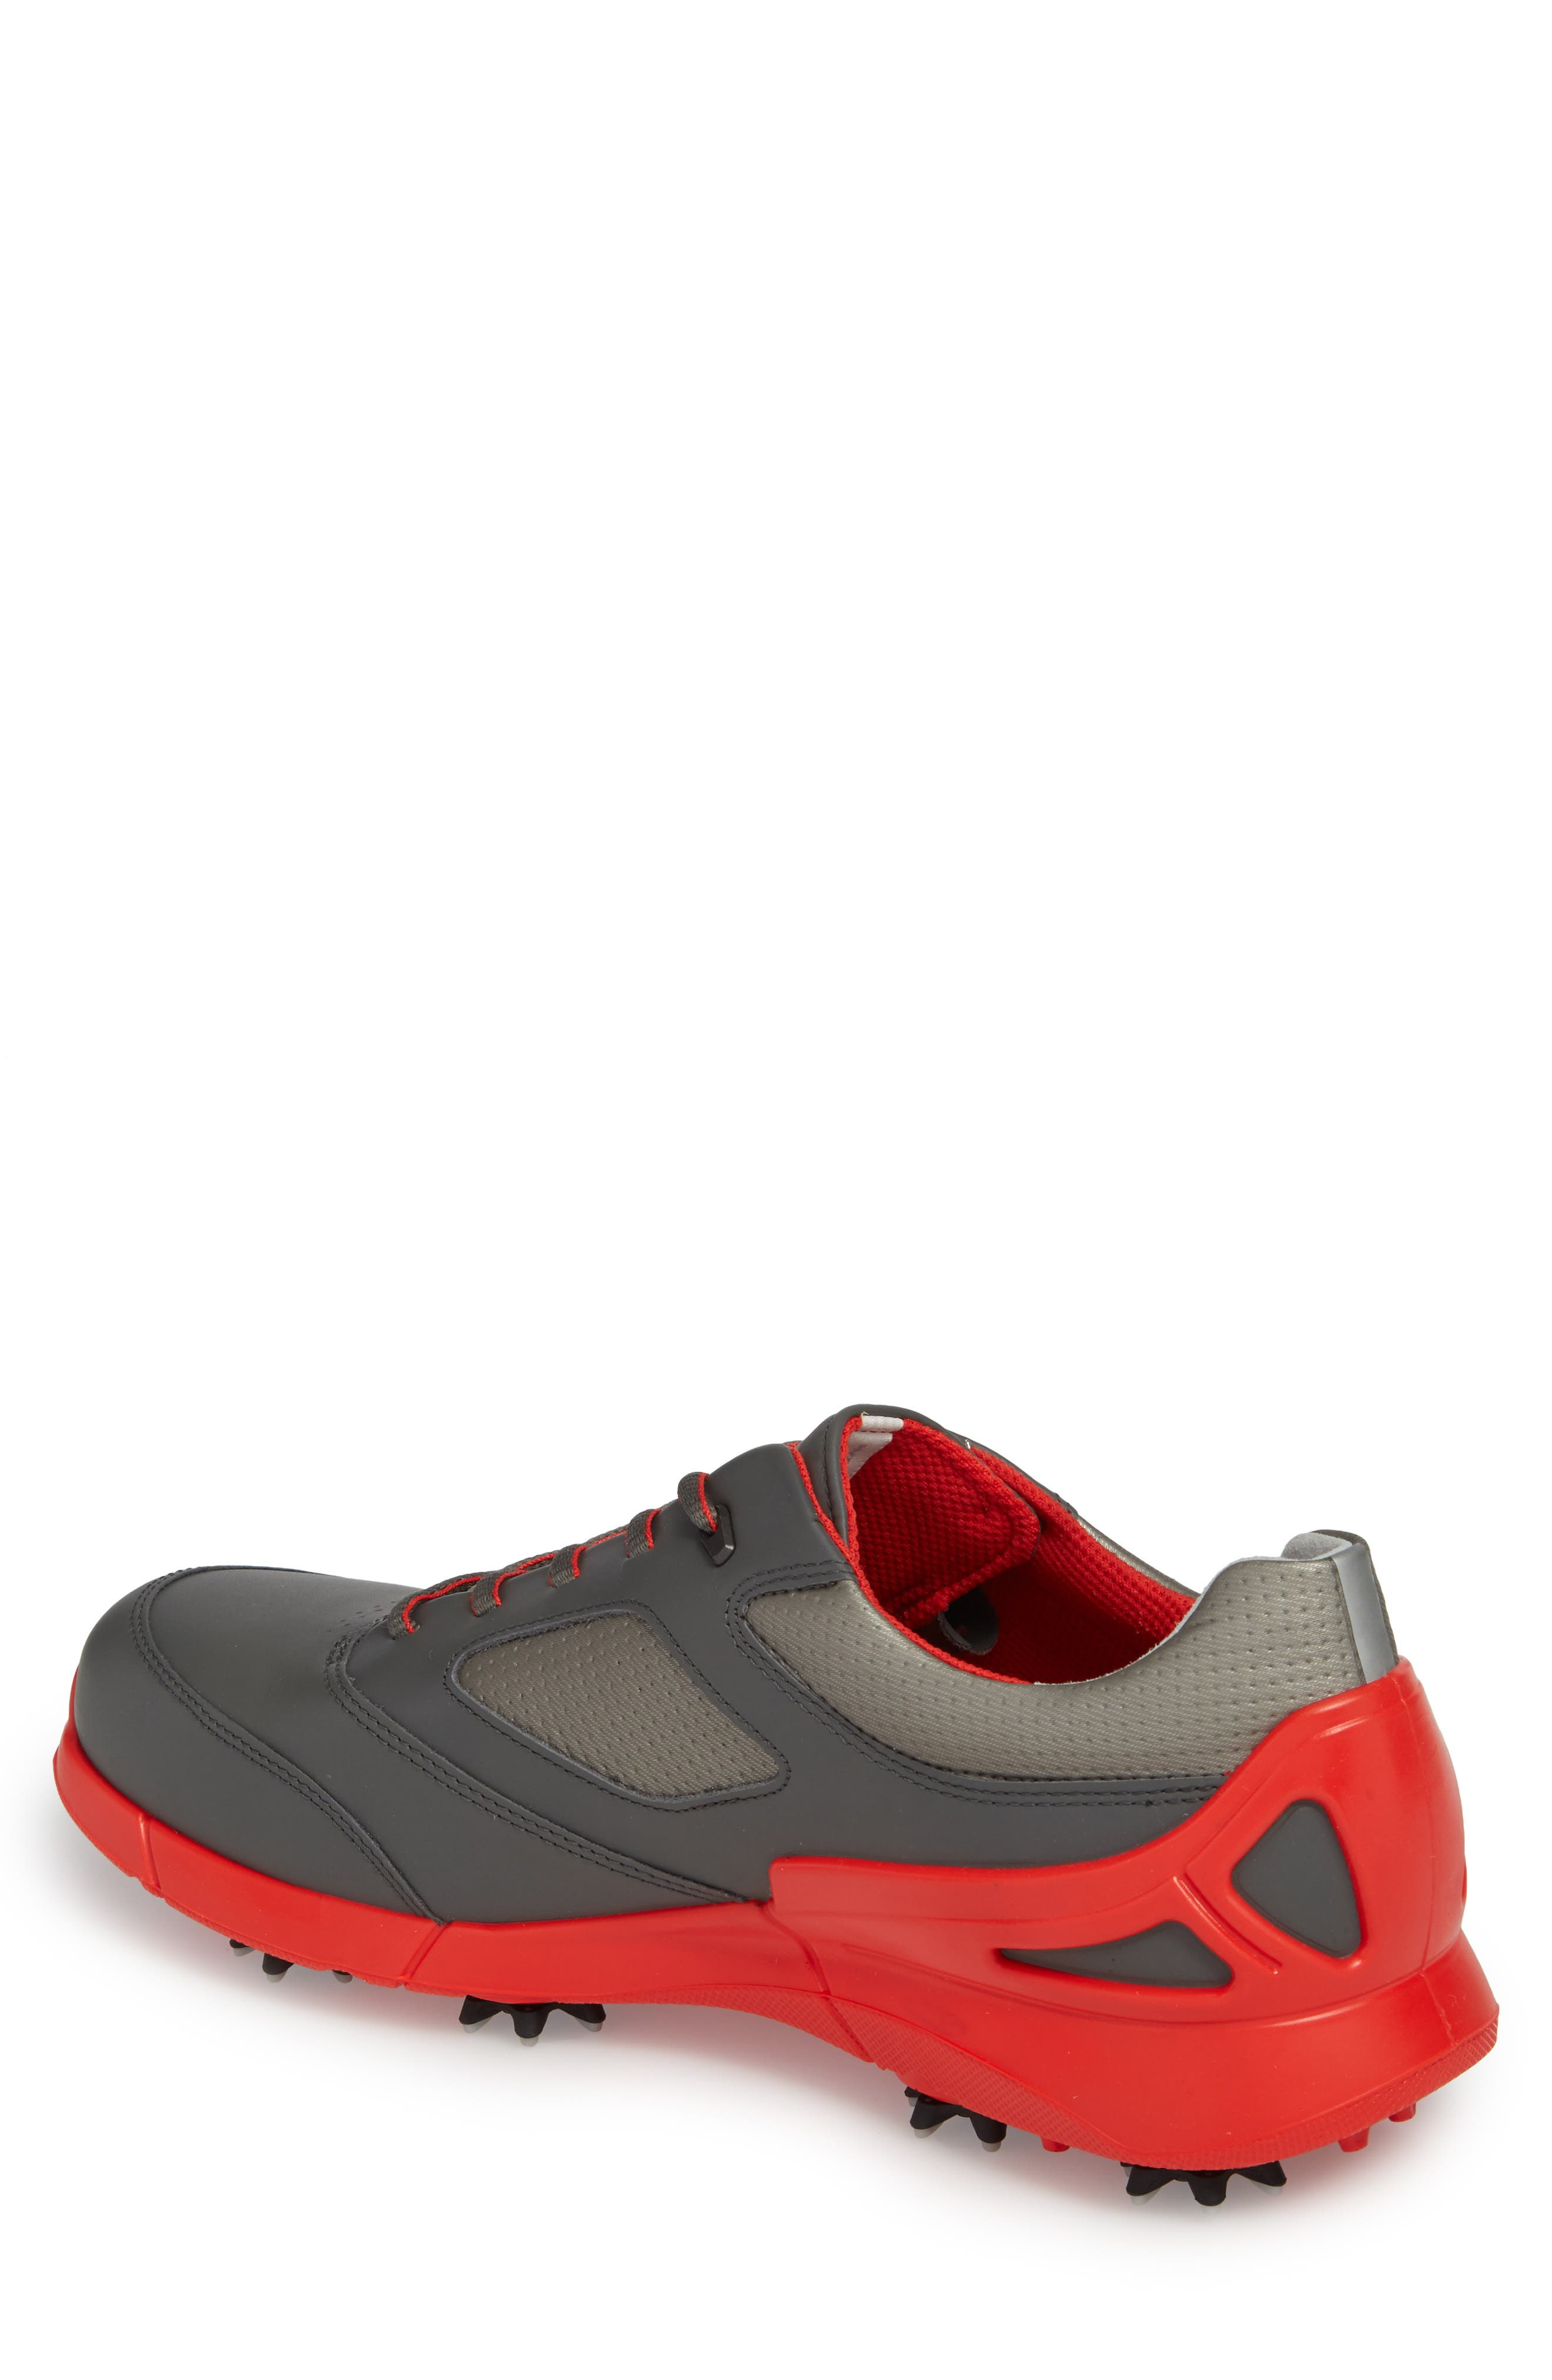 Base One Golf Shoe,                             Alternate thumbnail 2, color,                             BLACK/ SCARLET LEATHER